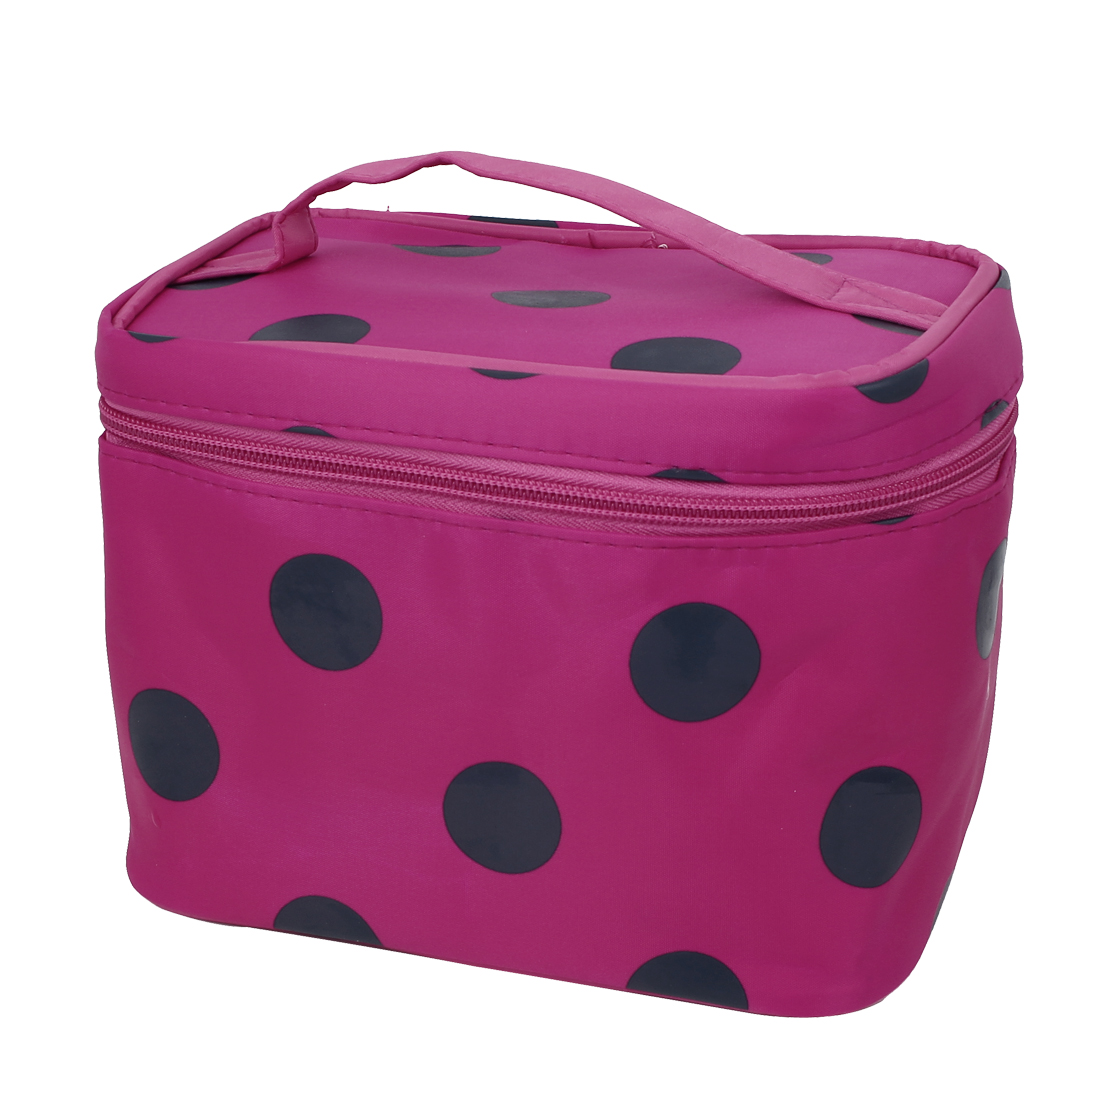 Dots Pattern Zippered Cosmetic Makeup Storage Case Organizer Bag Pouch Fuchsia